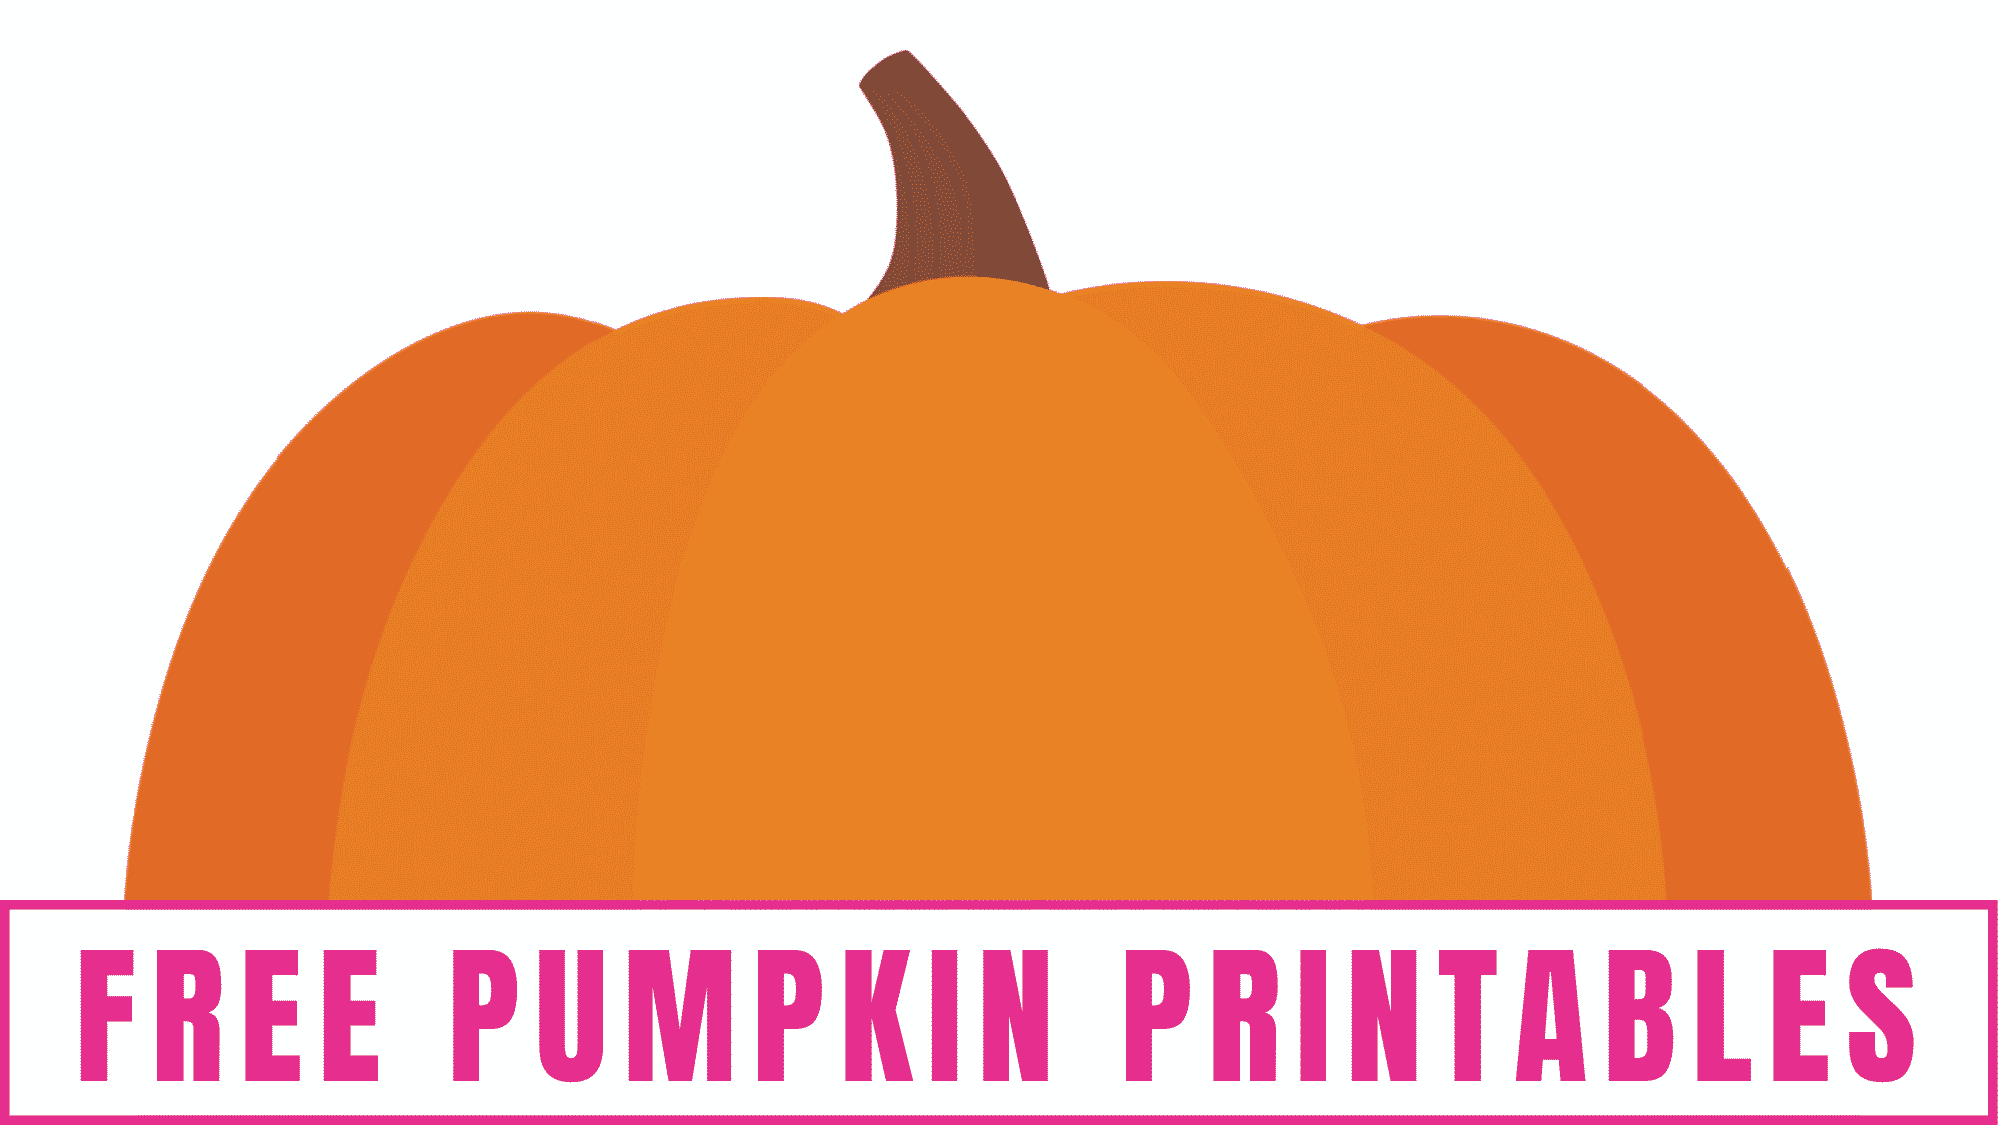 A fun fall craft for kids would be to have them make their own original face on these free pumpkin printables.